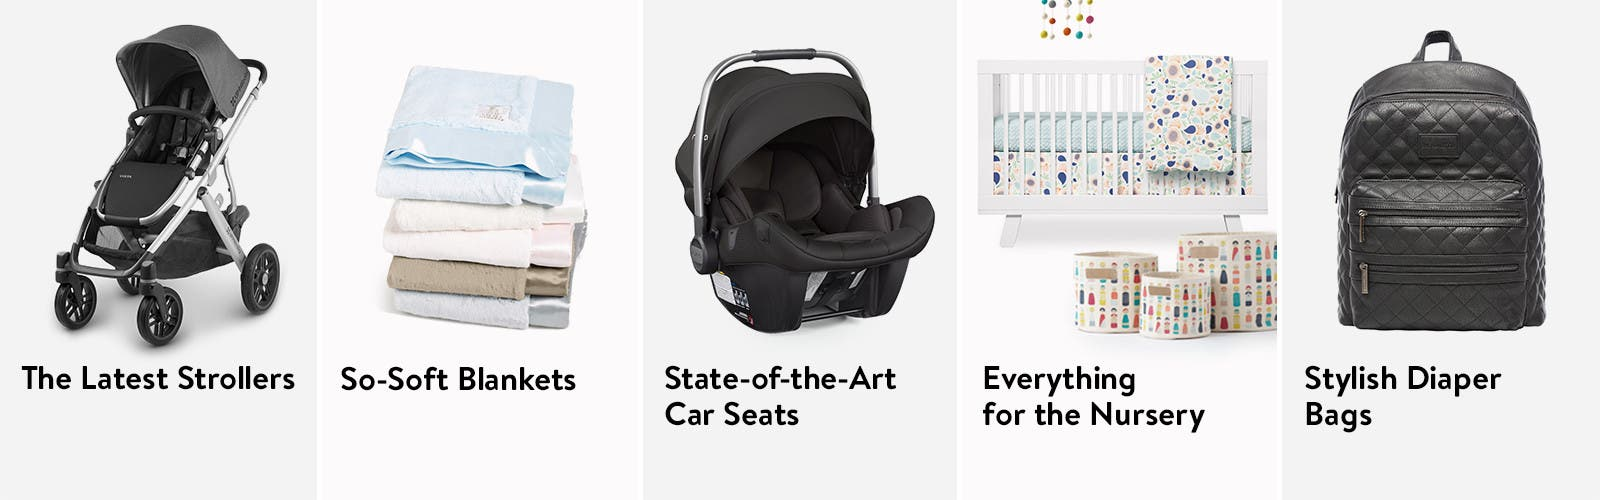 Baby gear essentials.